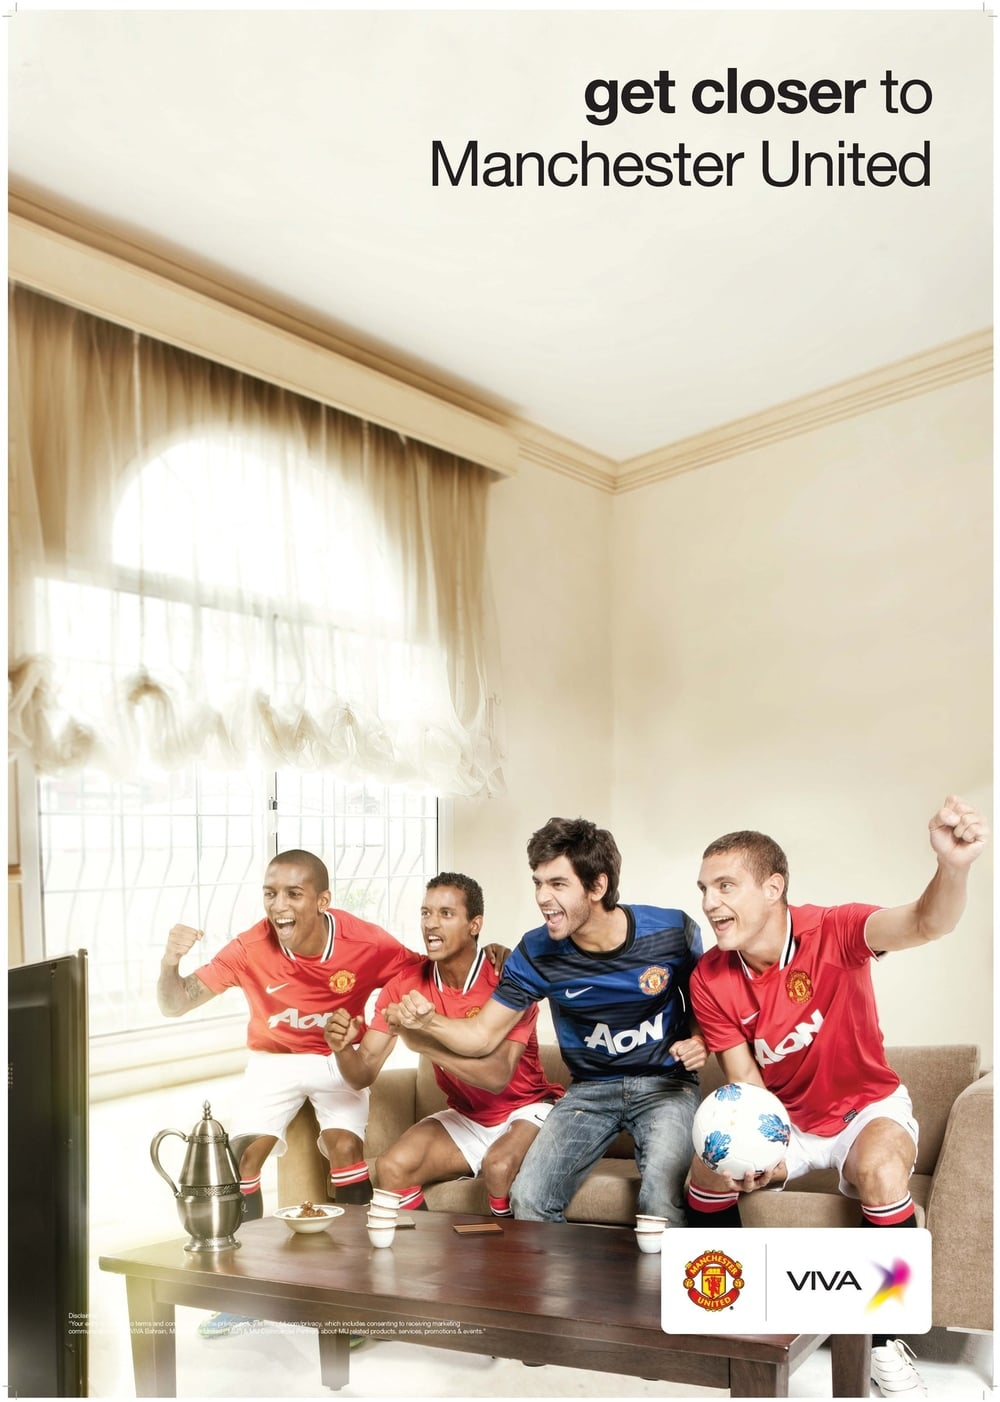 Tear sheet from the last Manchester United Campaign with Viva.